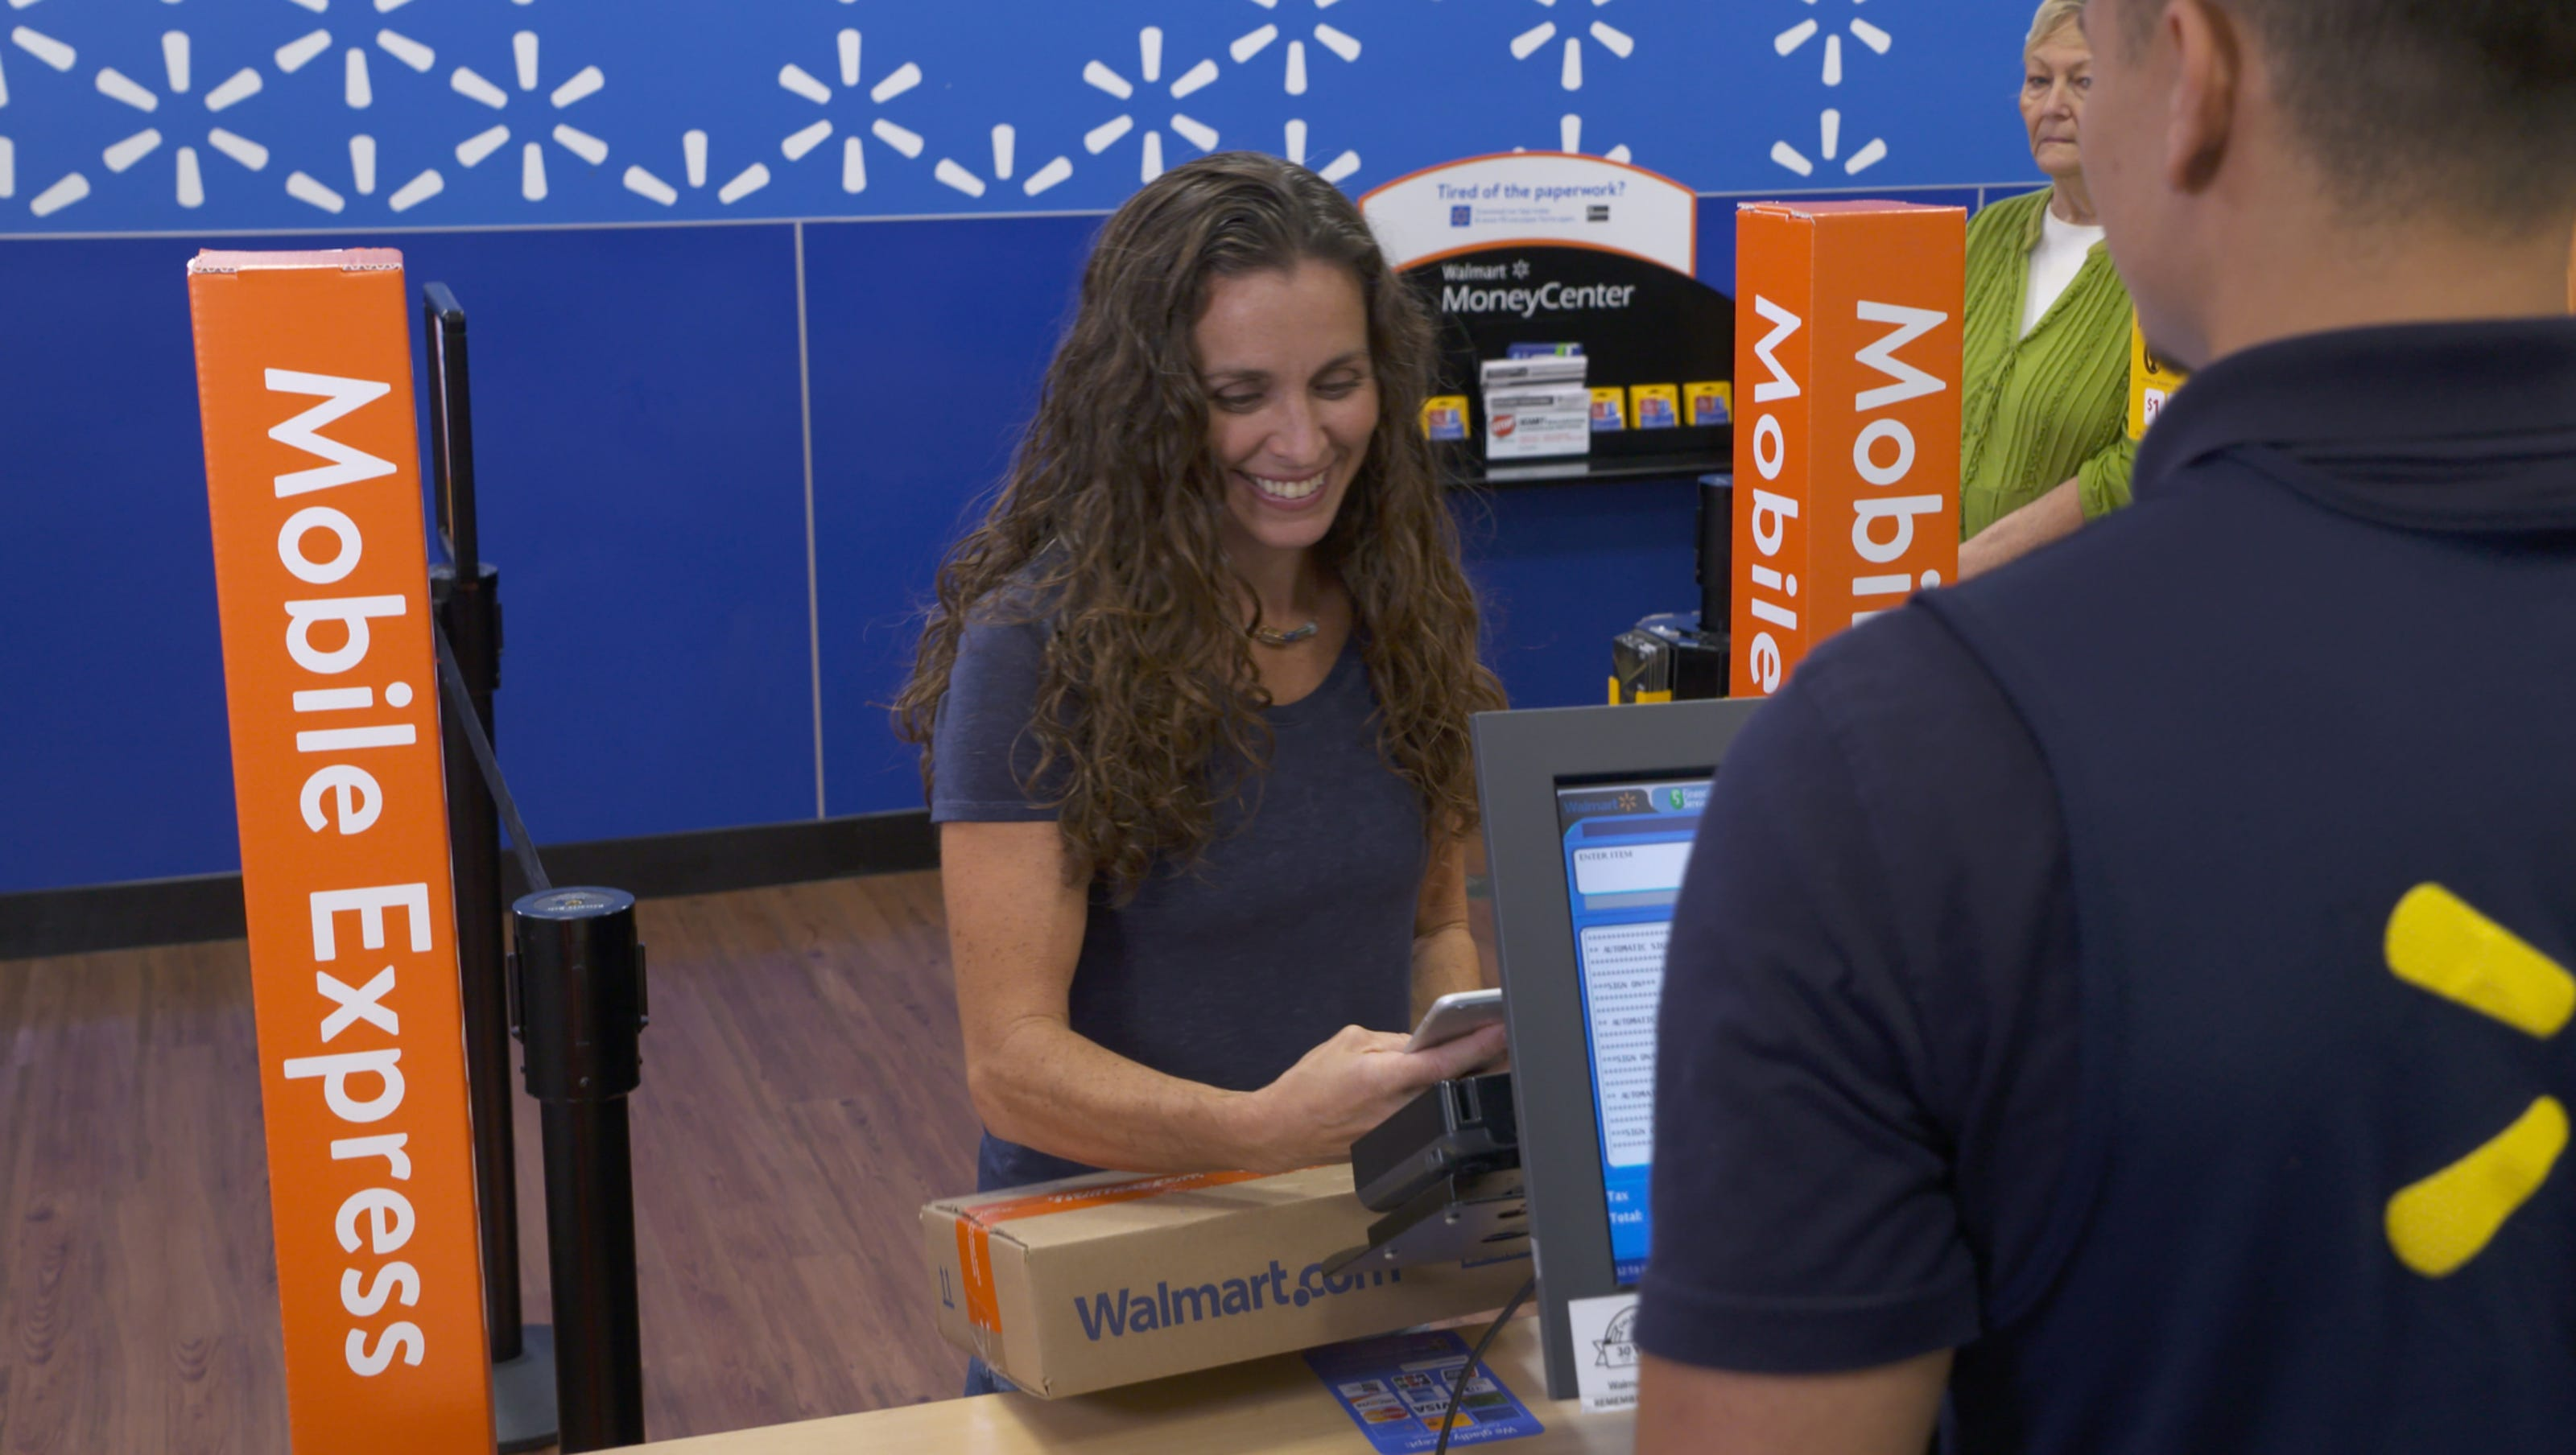 Fast Track Express >> Walmart lets you request fast refunds through phone app